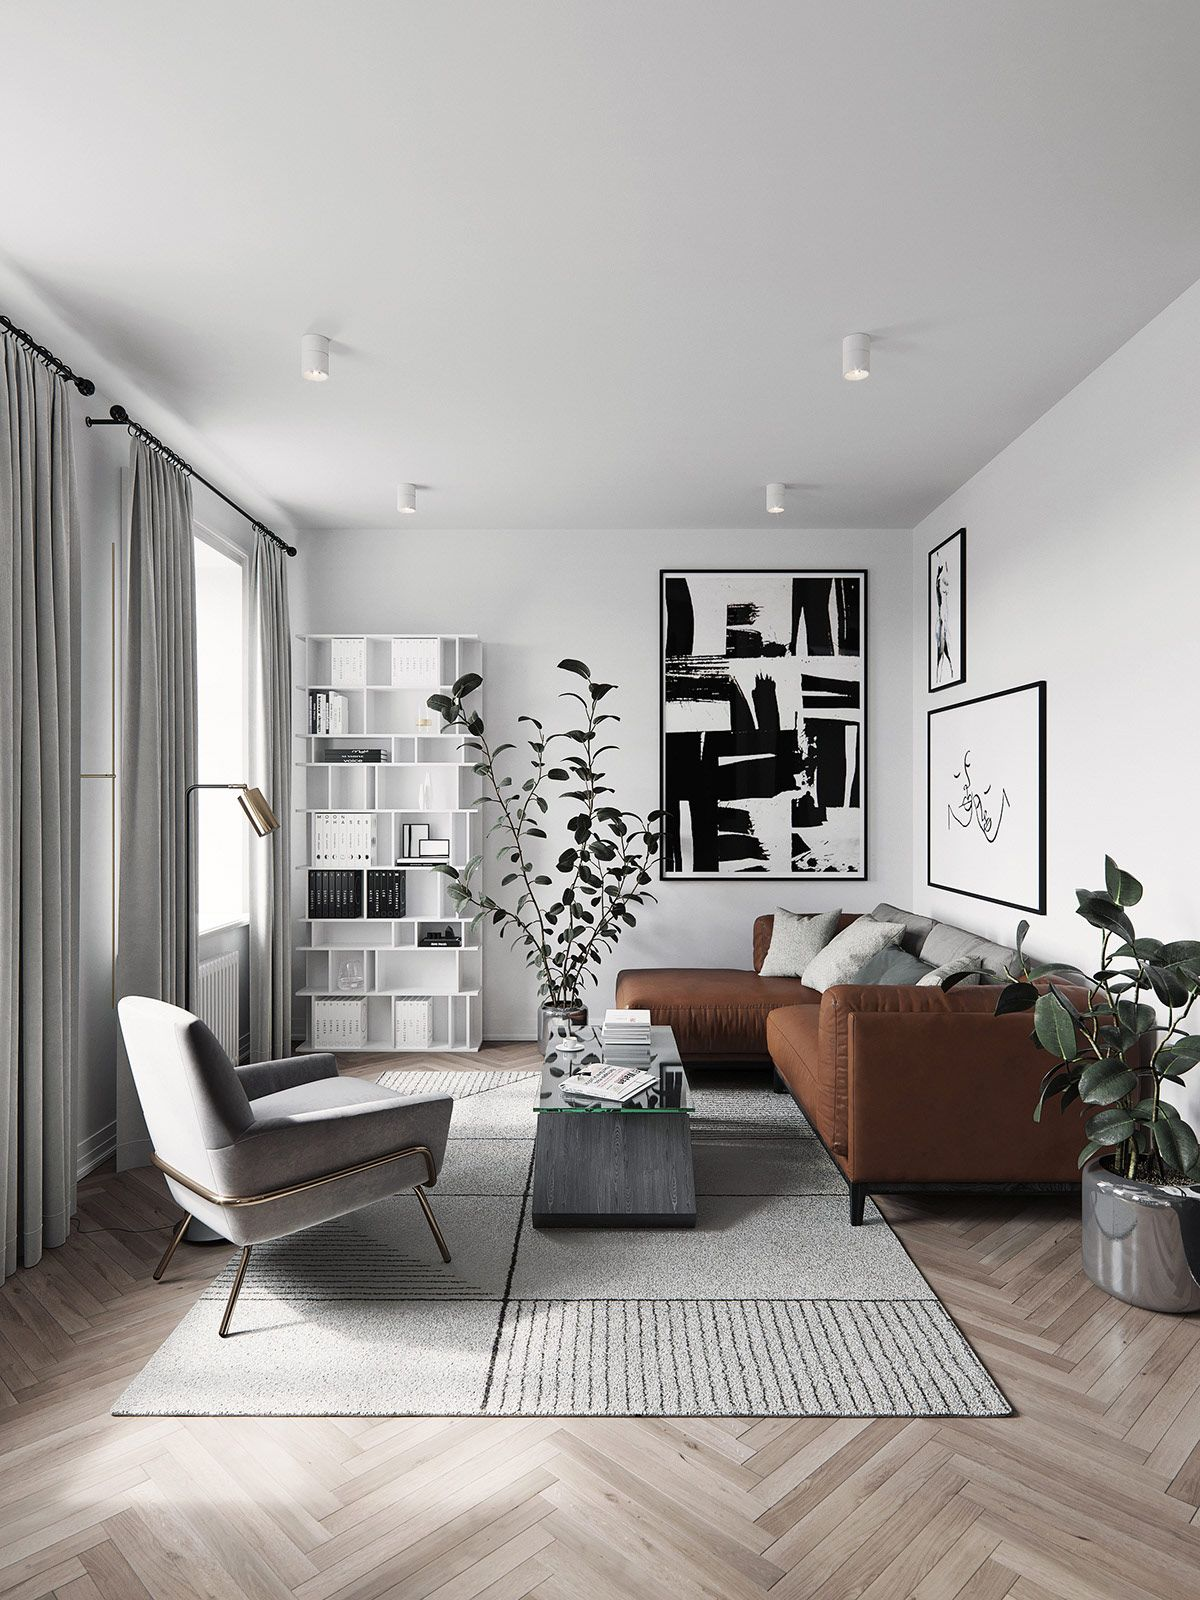 3 Homes Inspired By Different Takes On Nordic Interior Design Themes Modern Apartment Decor Apartment Interior Interior Design Living Room